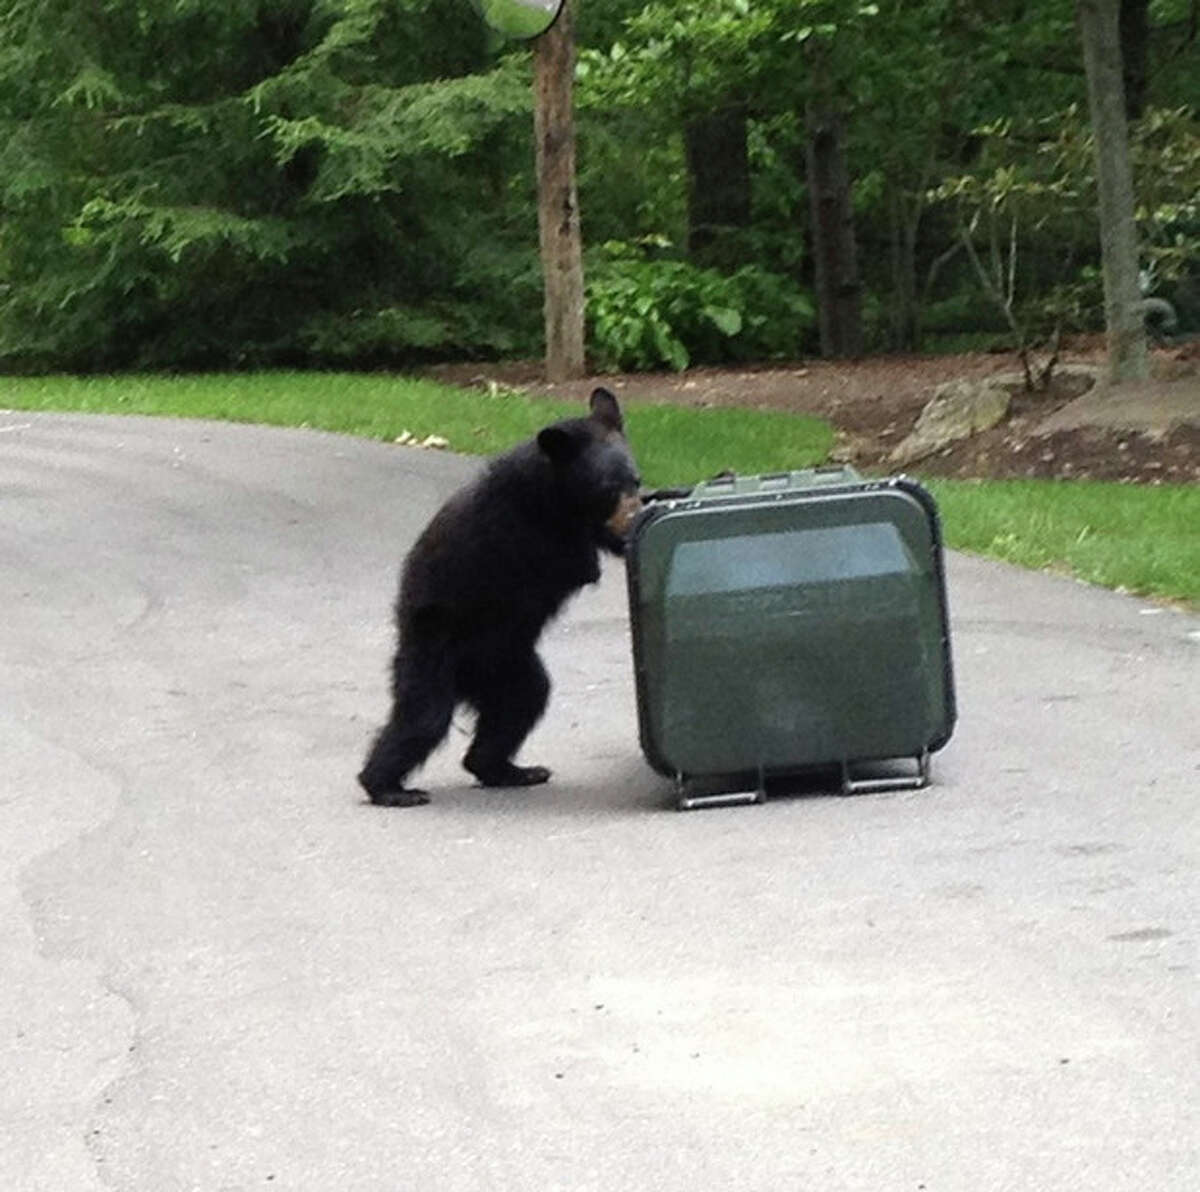 AP photo In this photo provided by Patty Willams, a three-legged bear tries to open a bear-proof trash can in Burnsville, N.C.